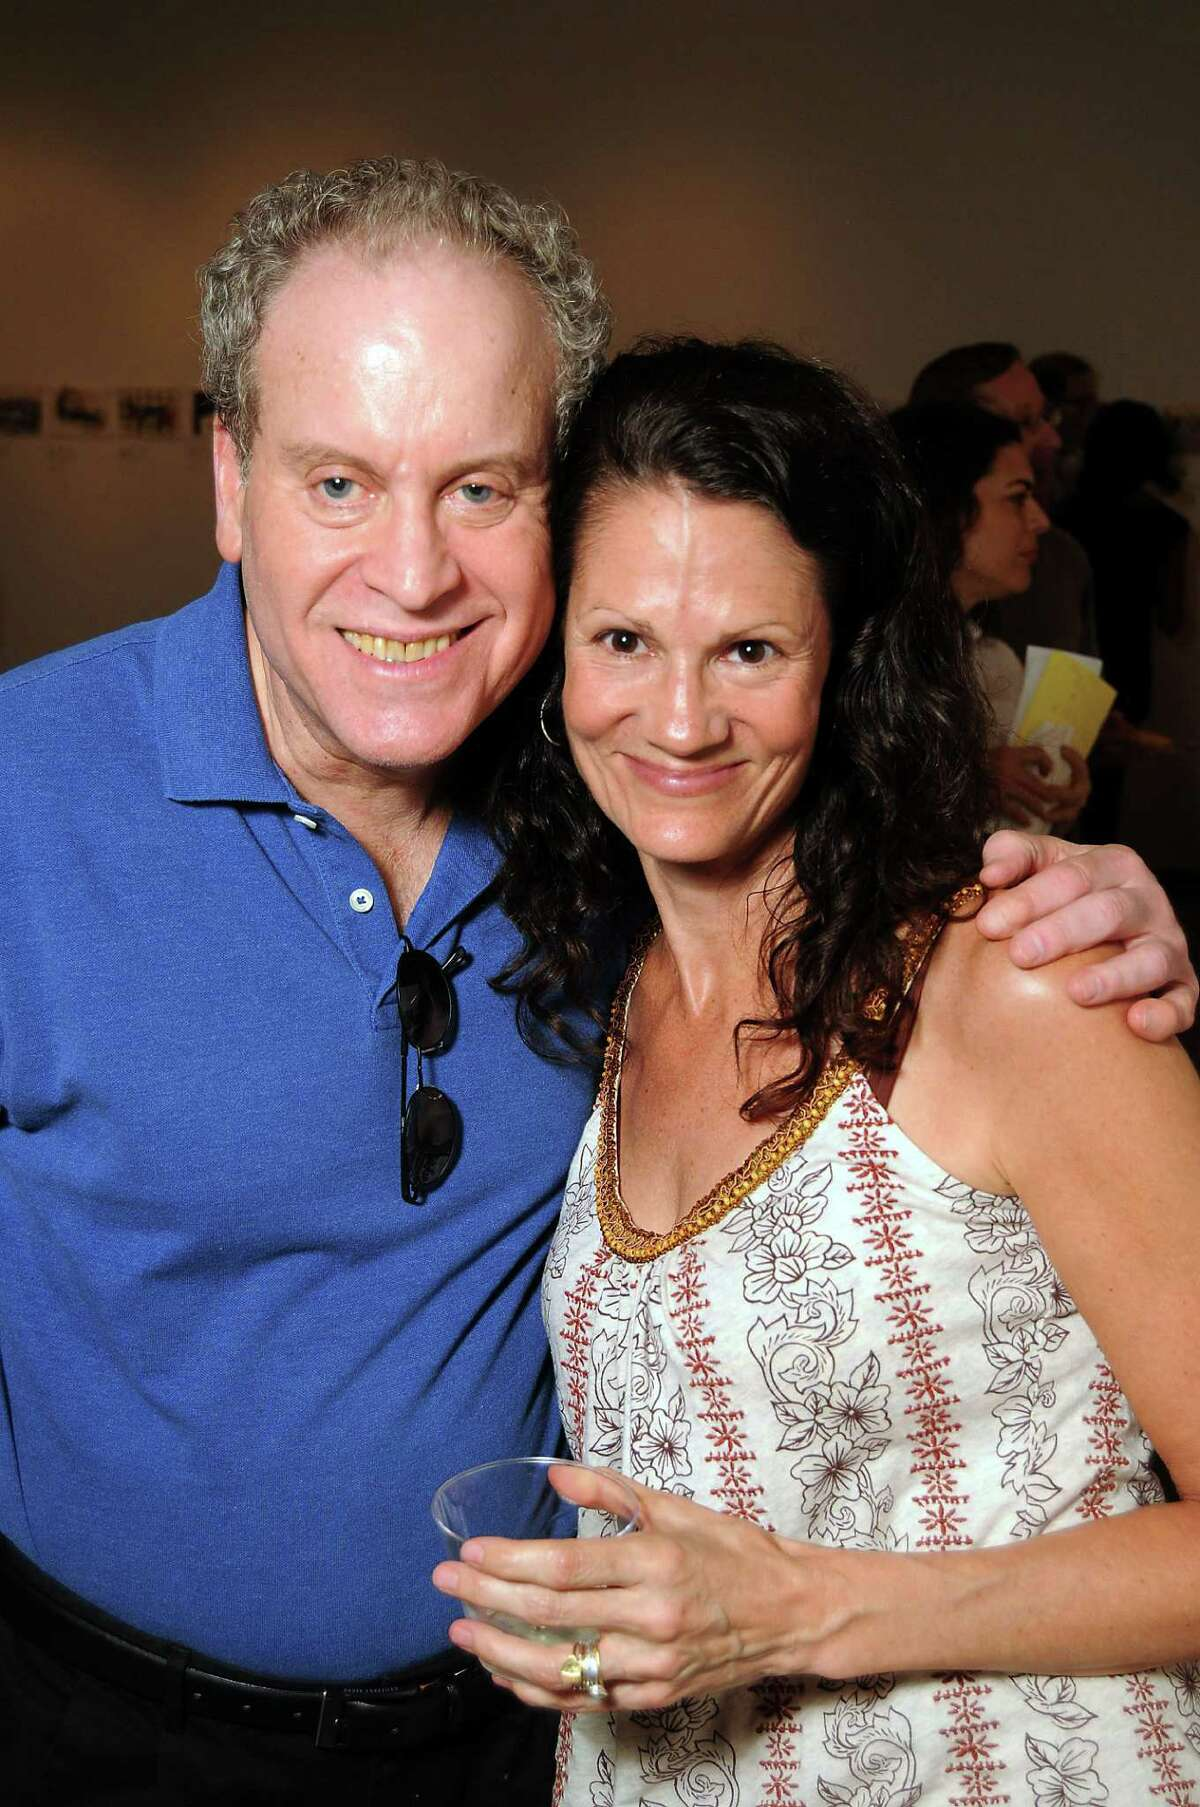 Rob Greenstein and Stephanie Atwood